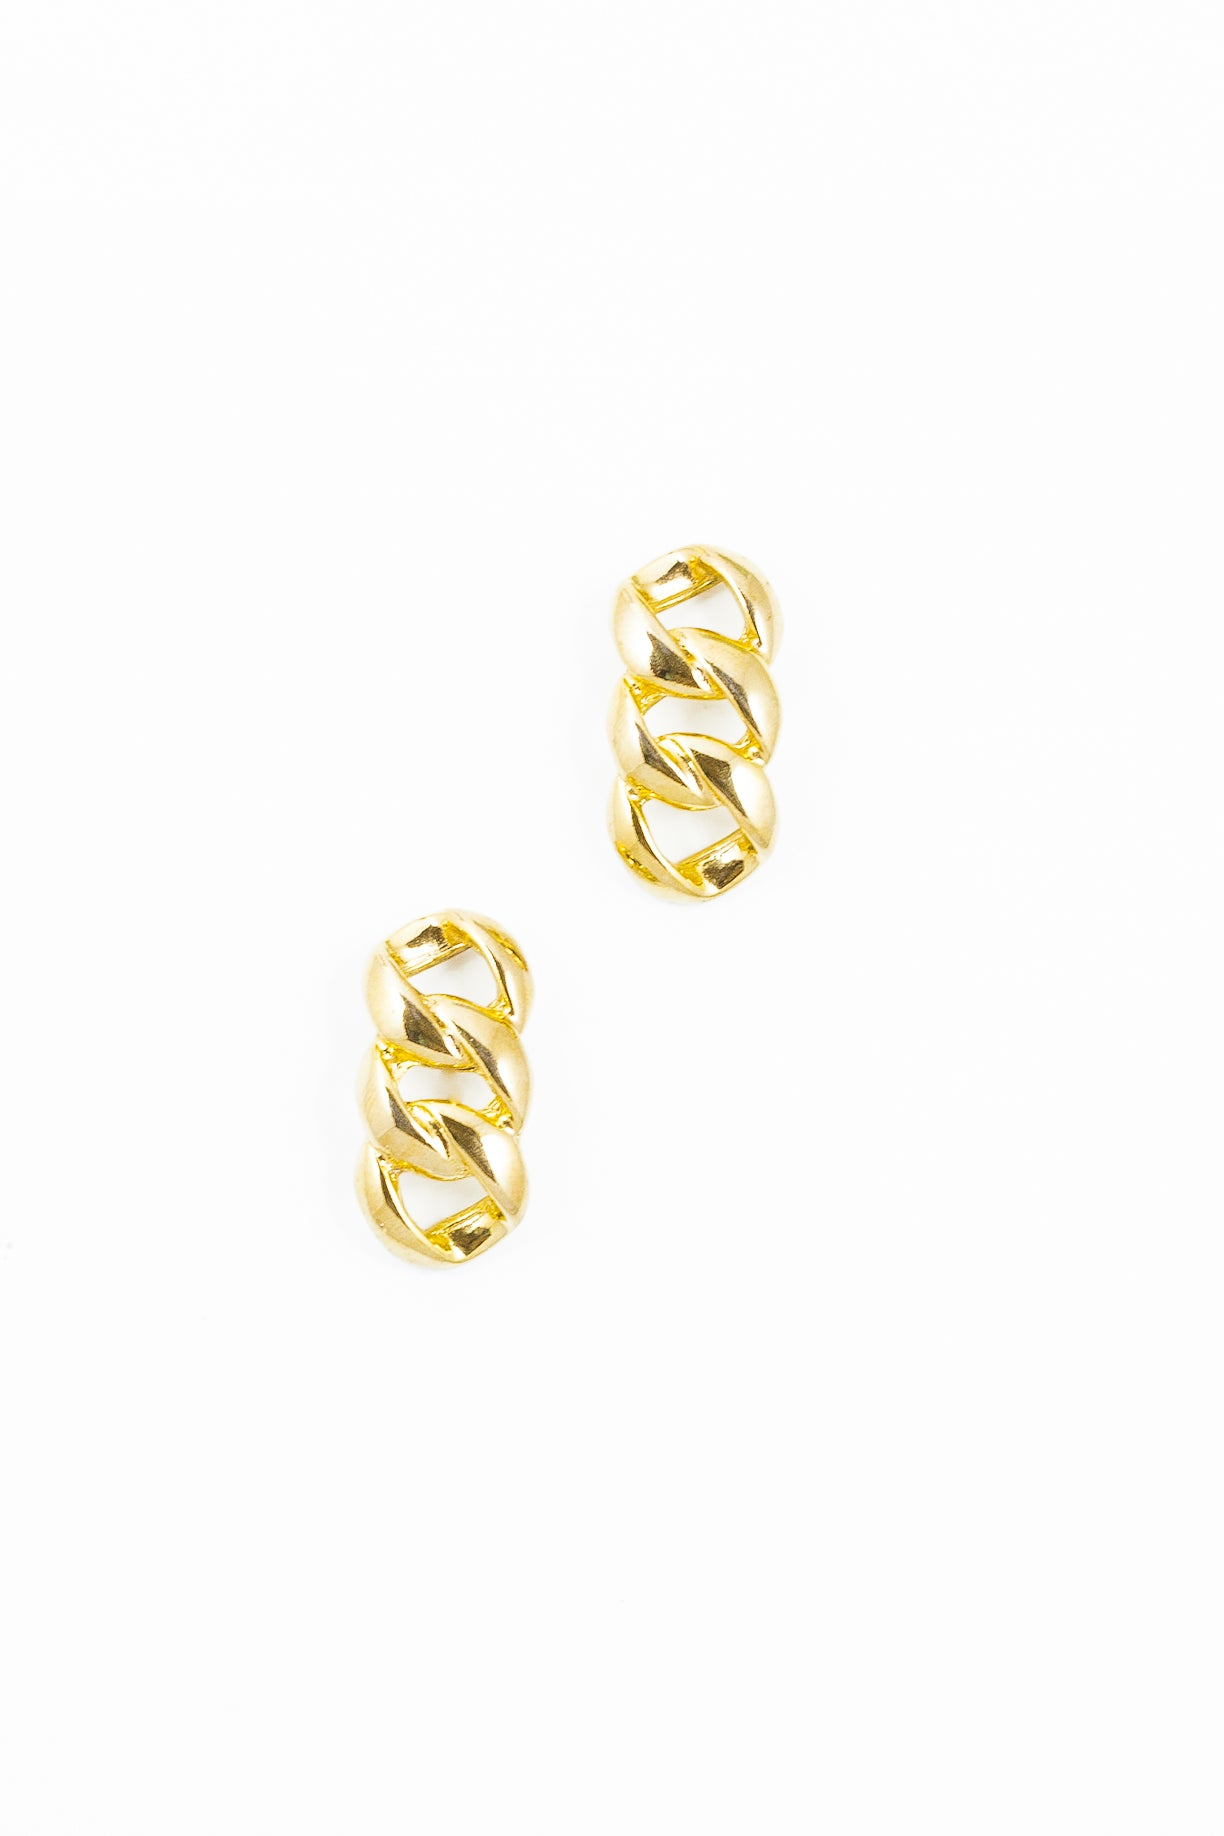 70's__Vintage__Drop Chain Link Earrings